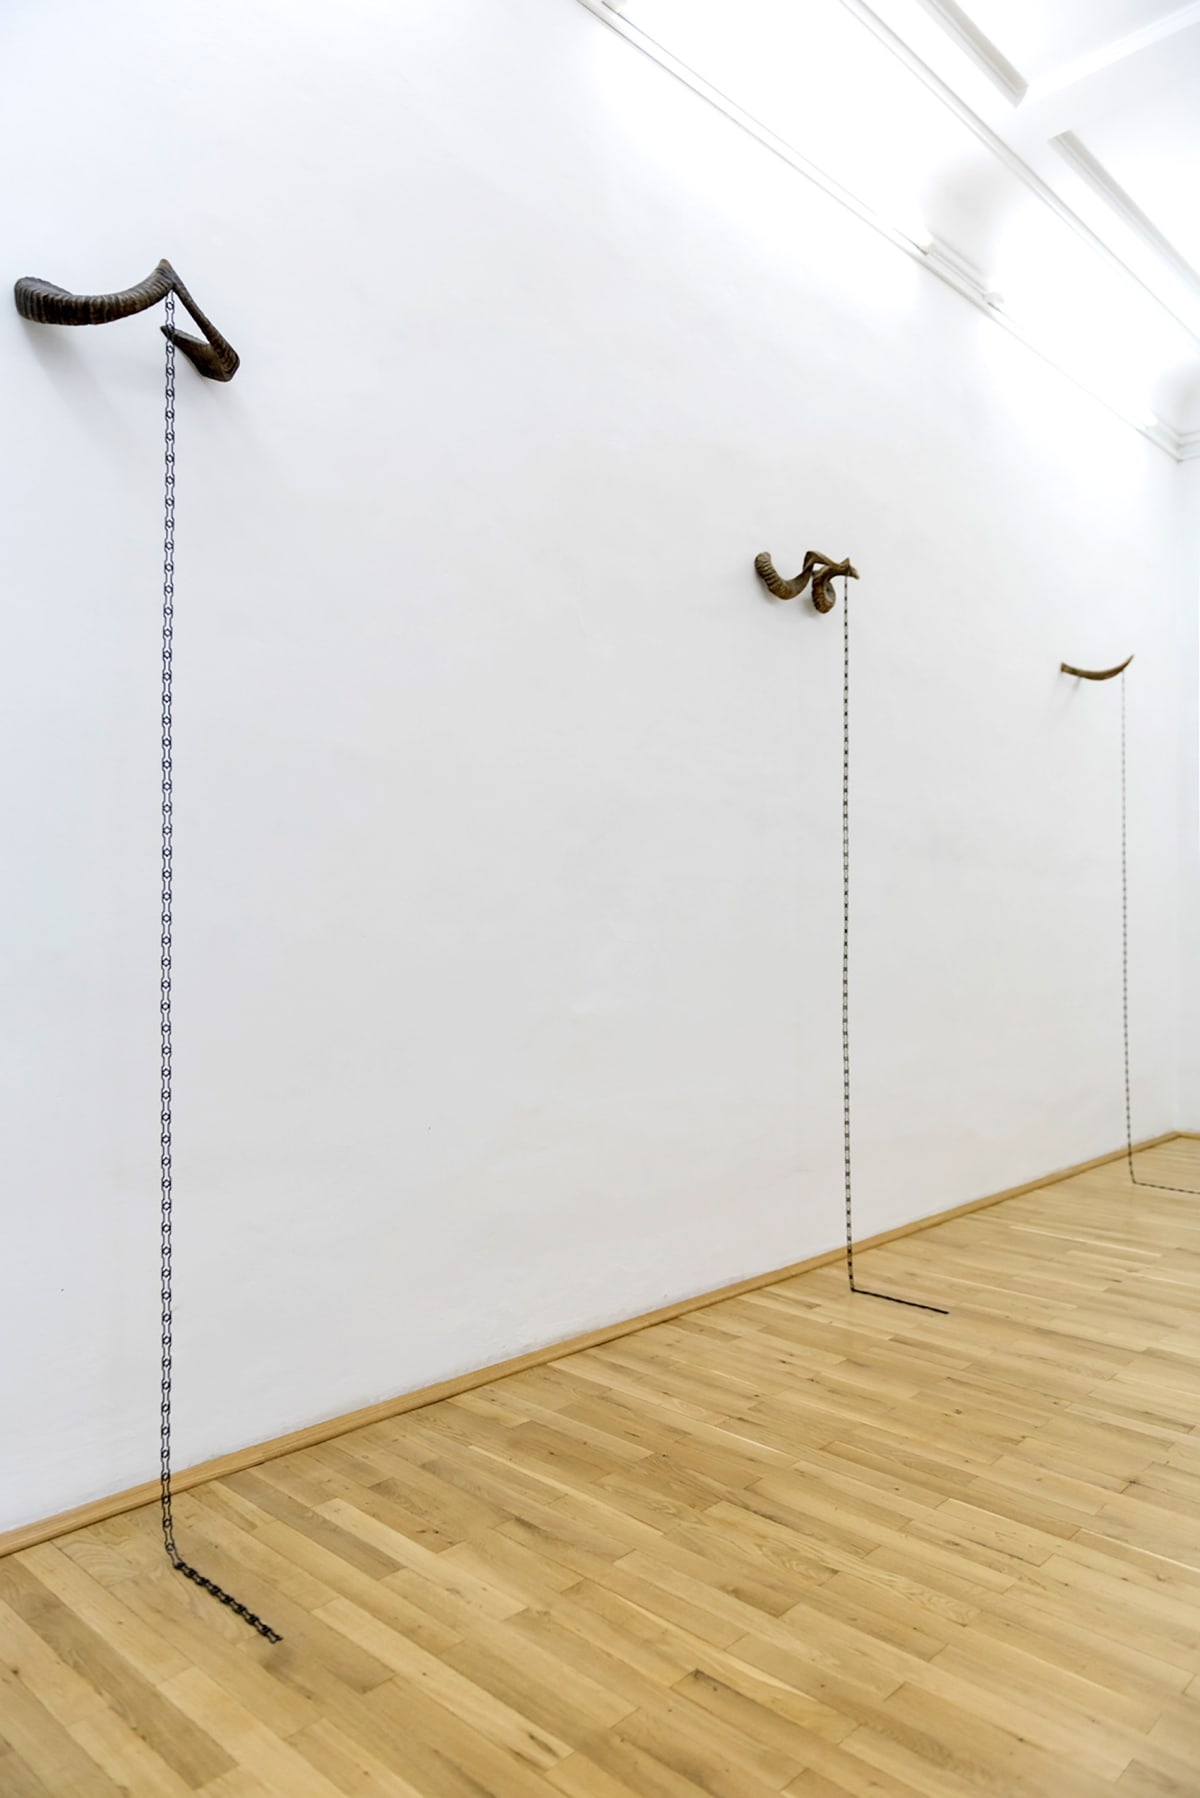 Image shows intallation of 3 horns separetely mounted on the wall that each have a chain that falls till the floor